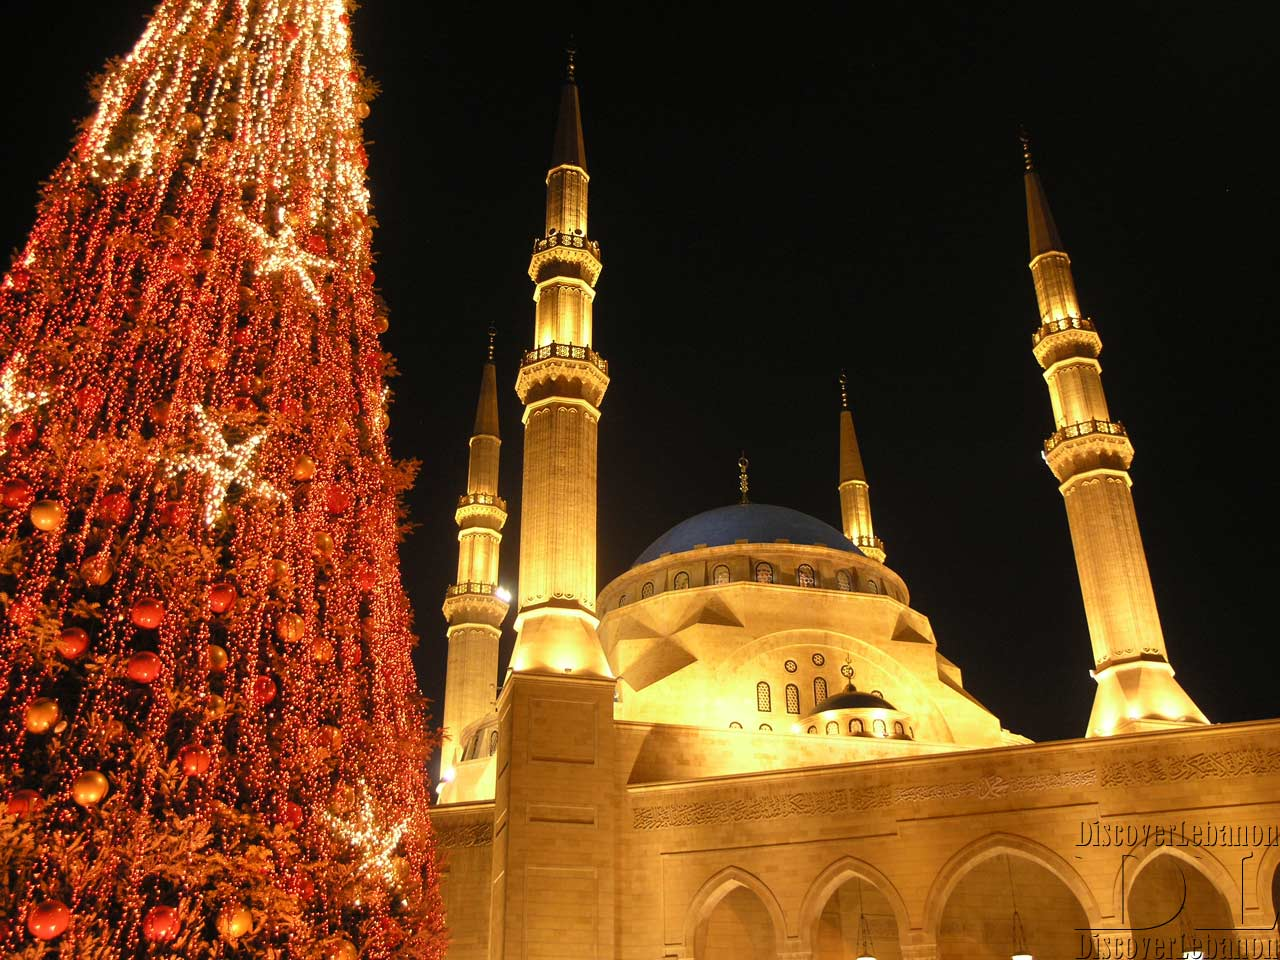 Wallpapers, HD high resolution image of Lebanon Mosque Beirut